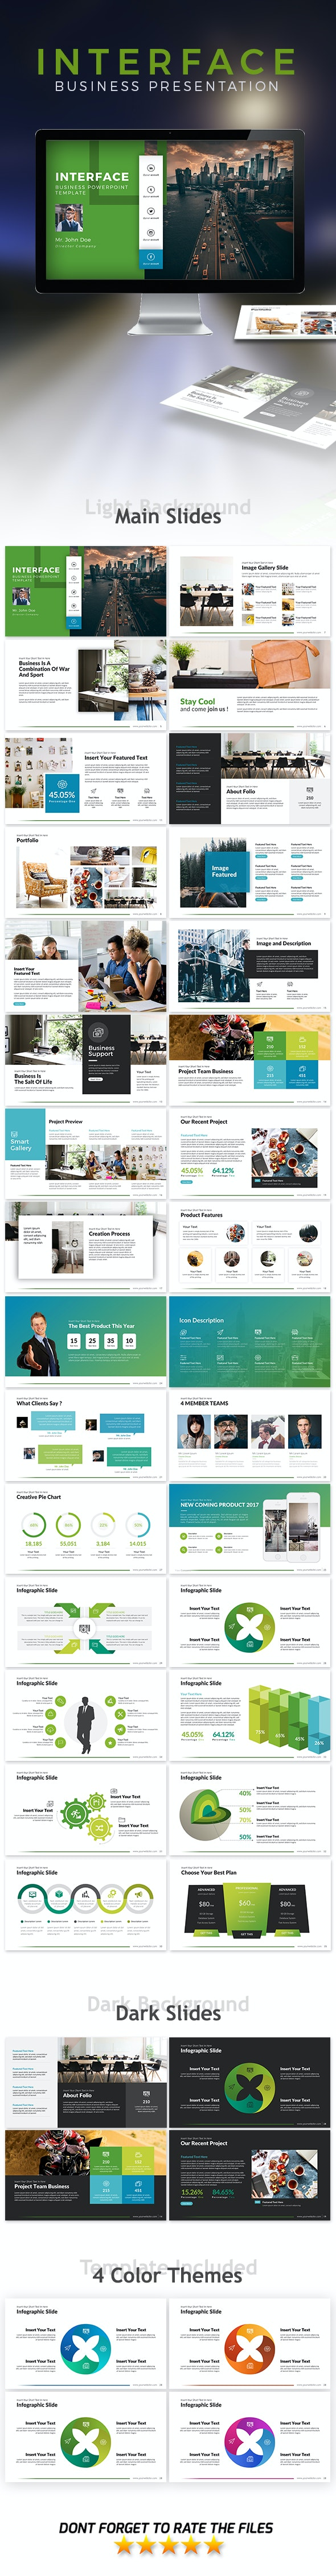 Interface Powerpoint Template - Business PowerPoint Templates